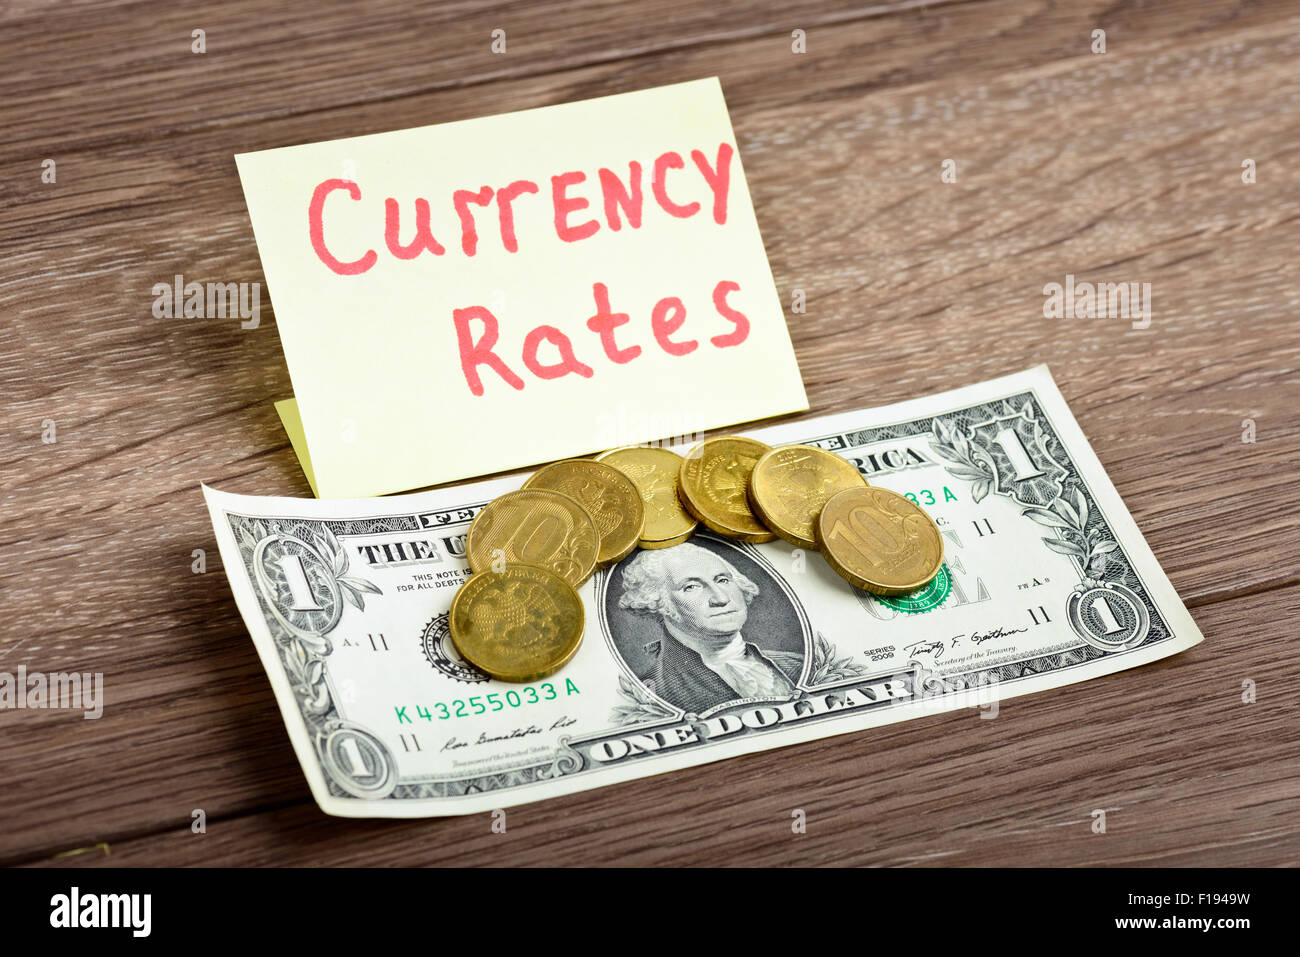 Currency exchange rates. Now 70 russian ruble per 1 american dollar - Stock Image